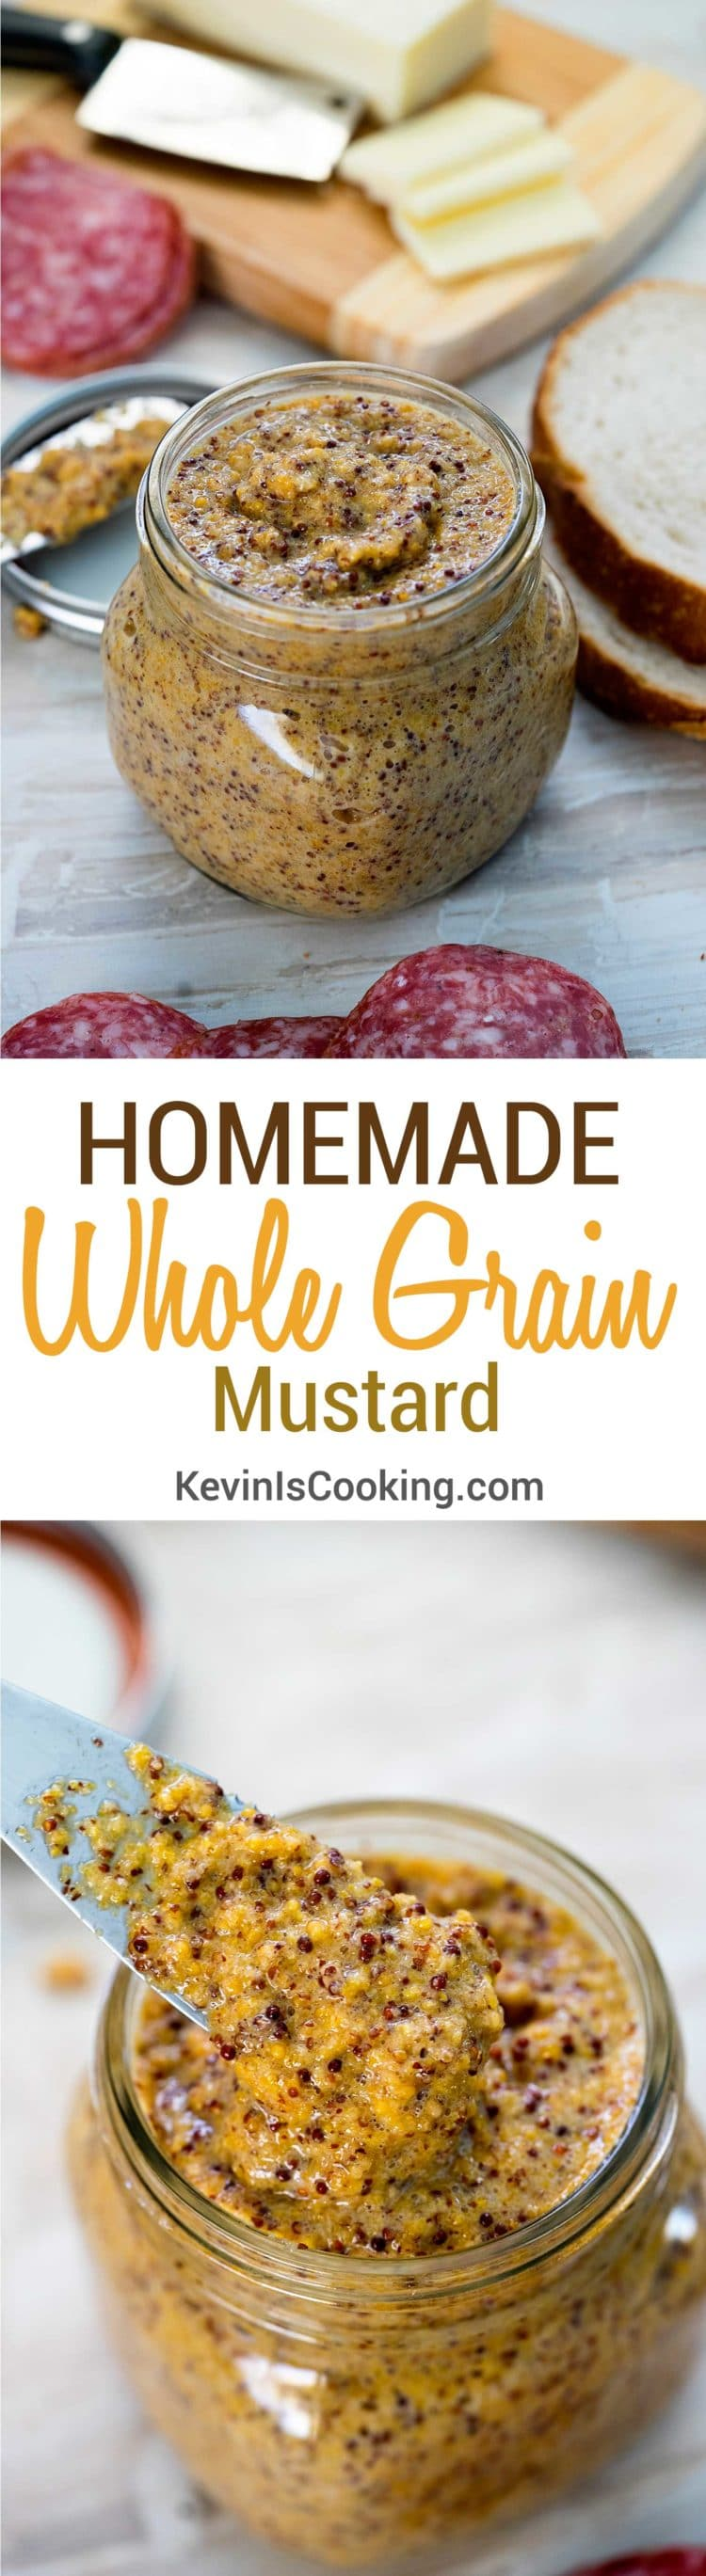 This Whole Grain Mustard is super easy to make, you know what goes in it and probably have everything in your pantry. With beer to bump up the flavor!